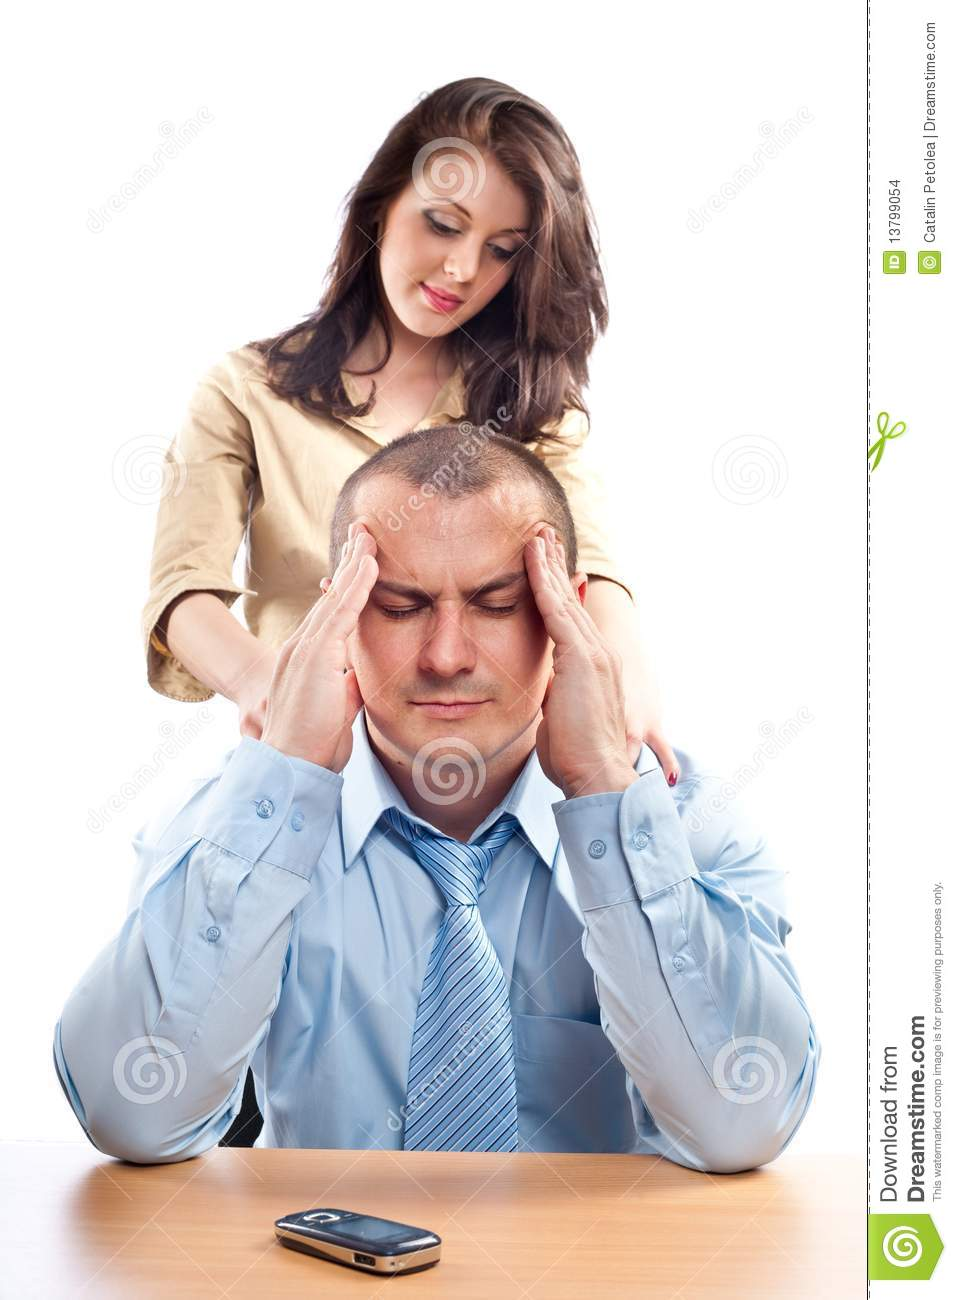 office flirting stock images   image 13799054